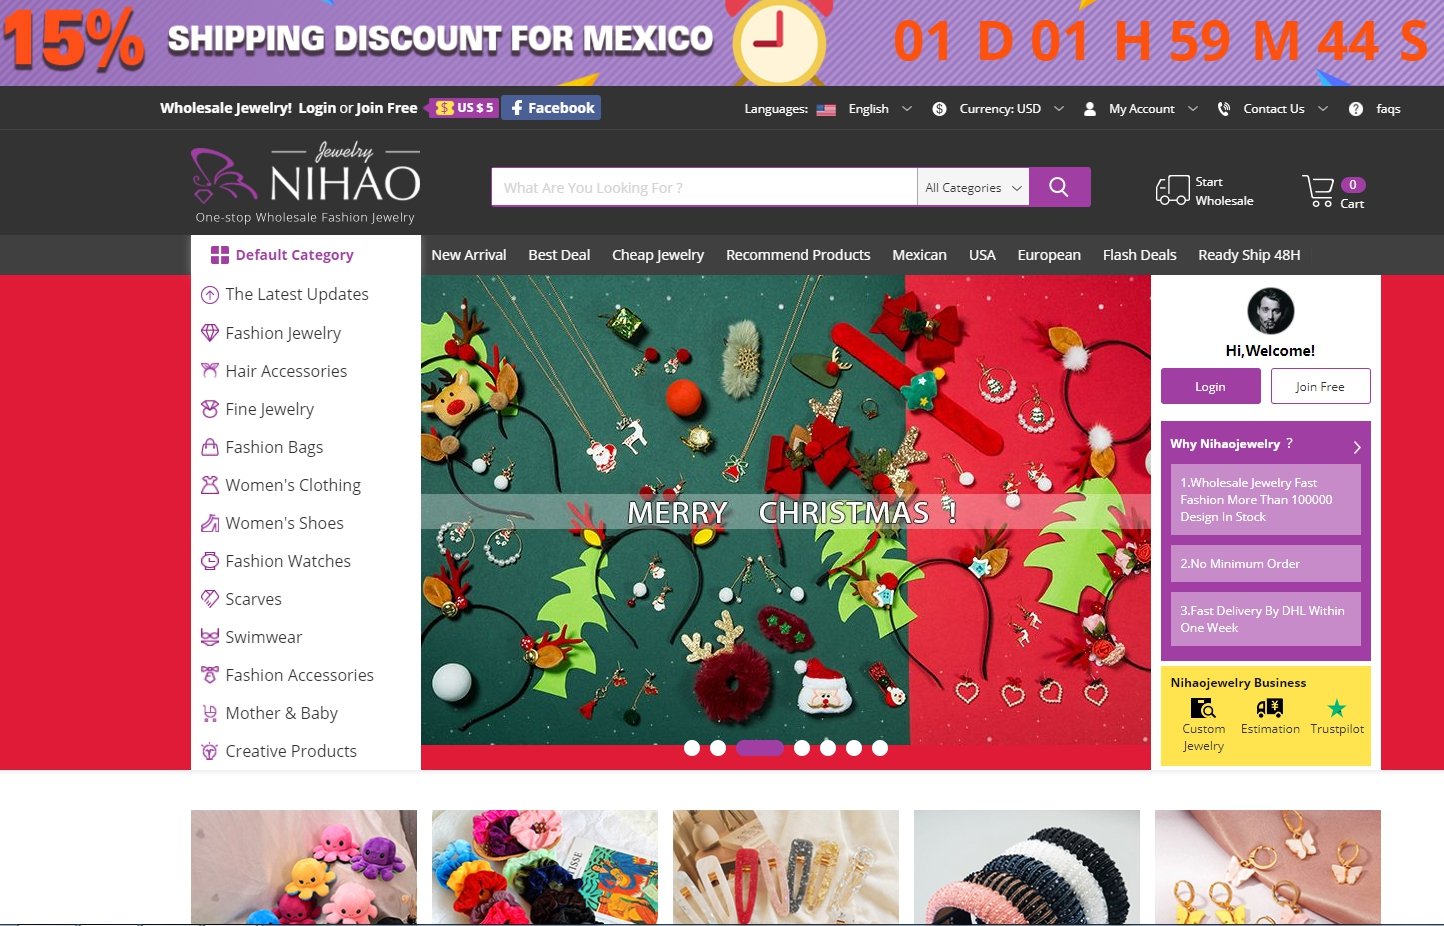 Nihaojewelry homepage- Christmas products banner